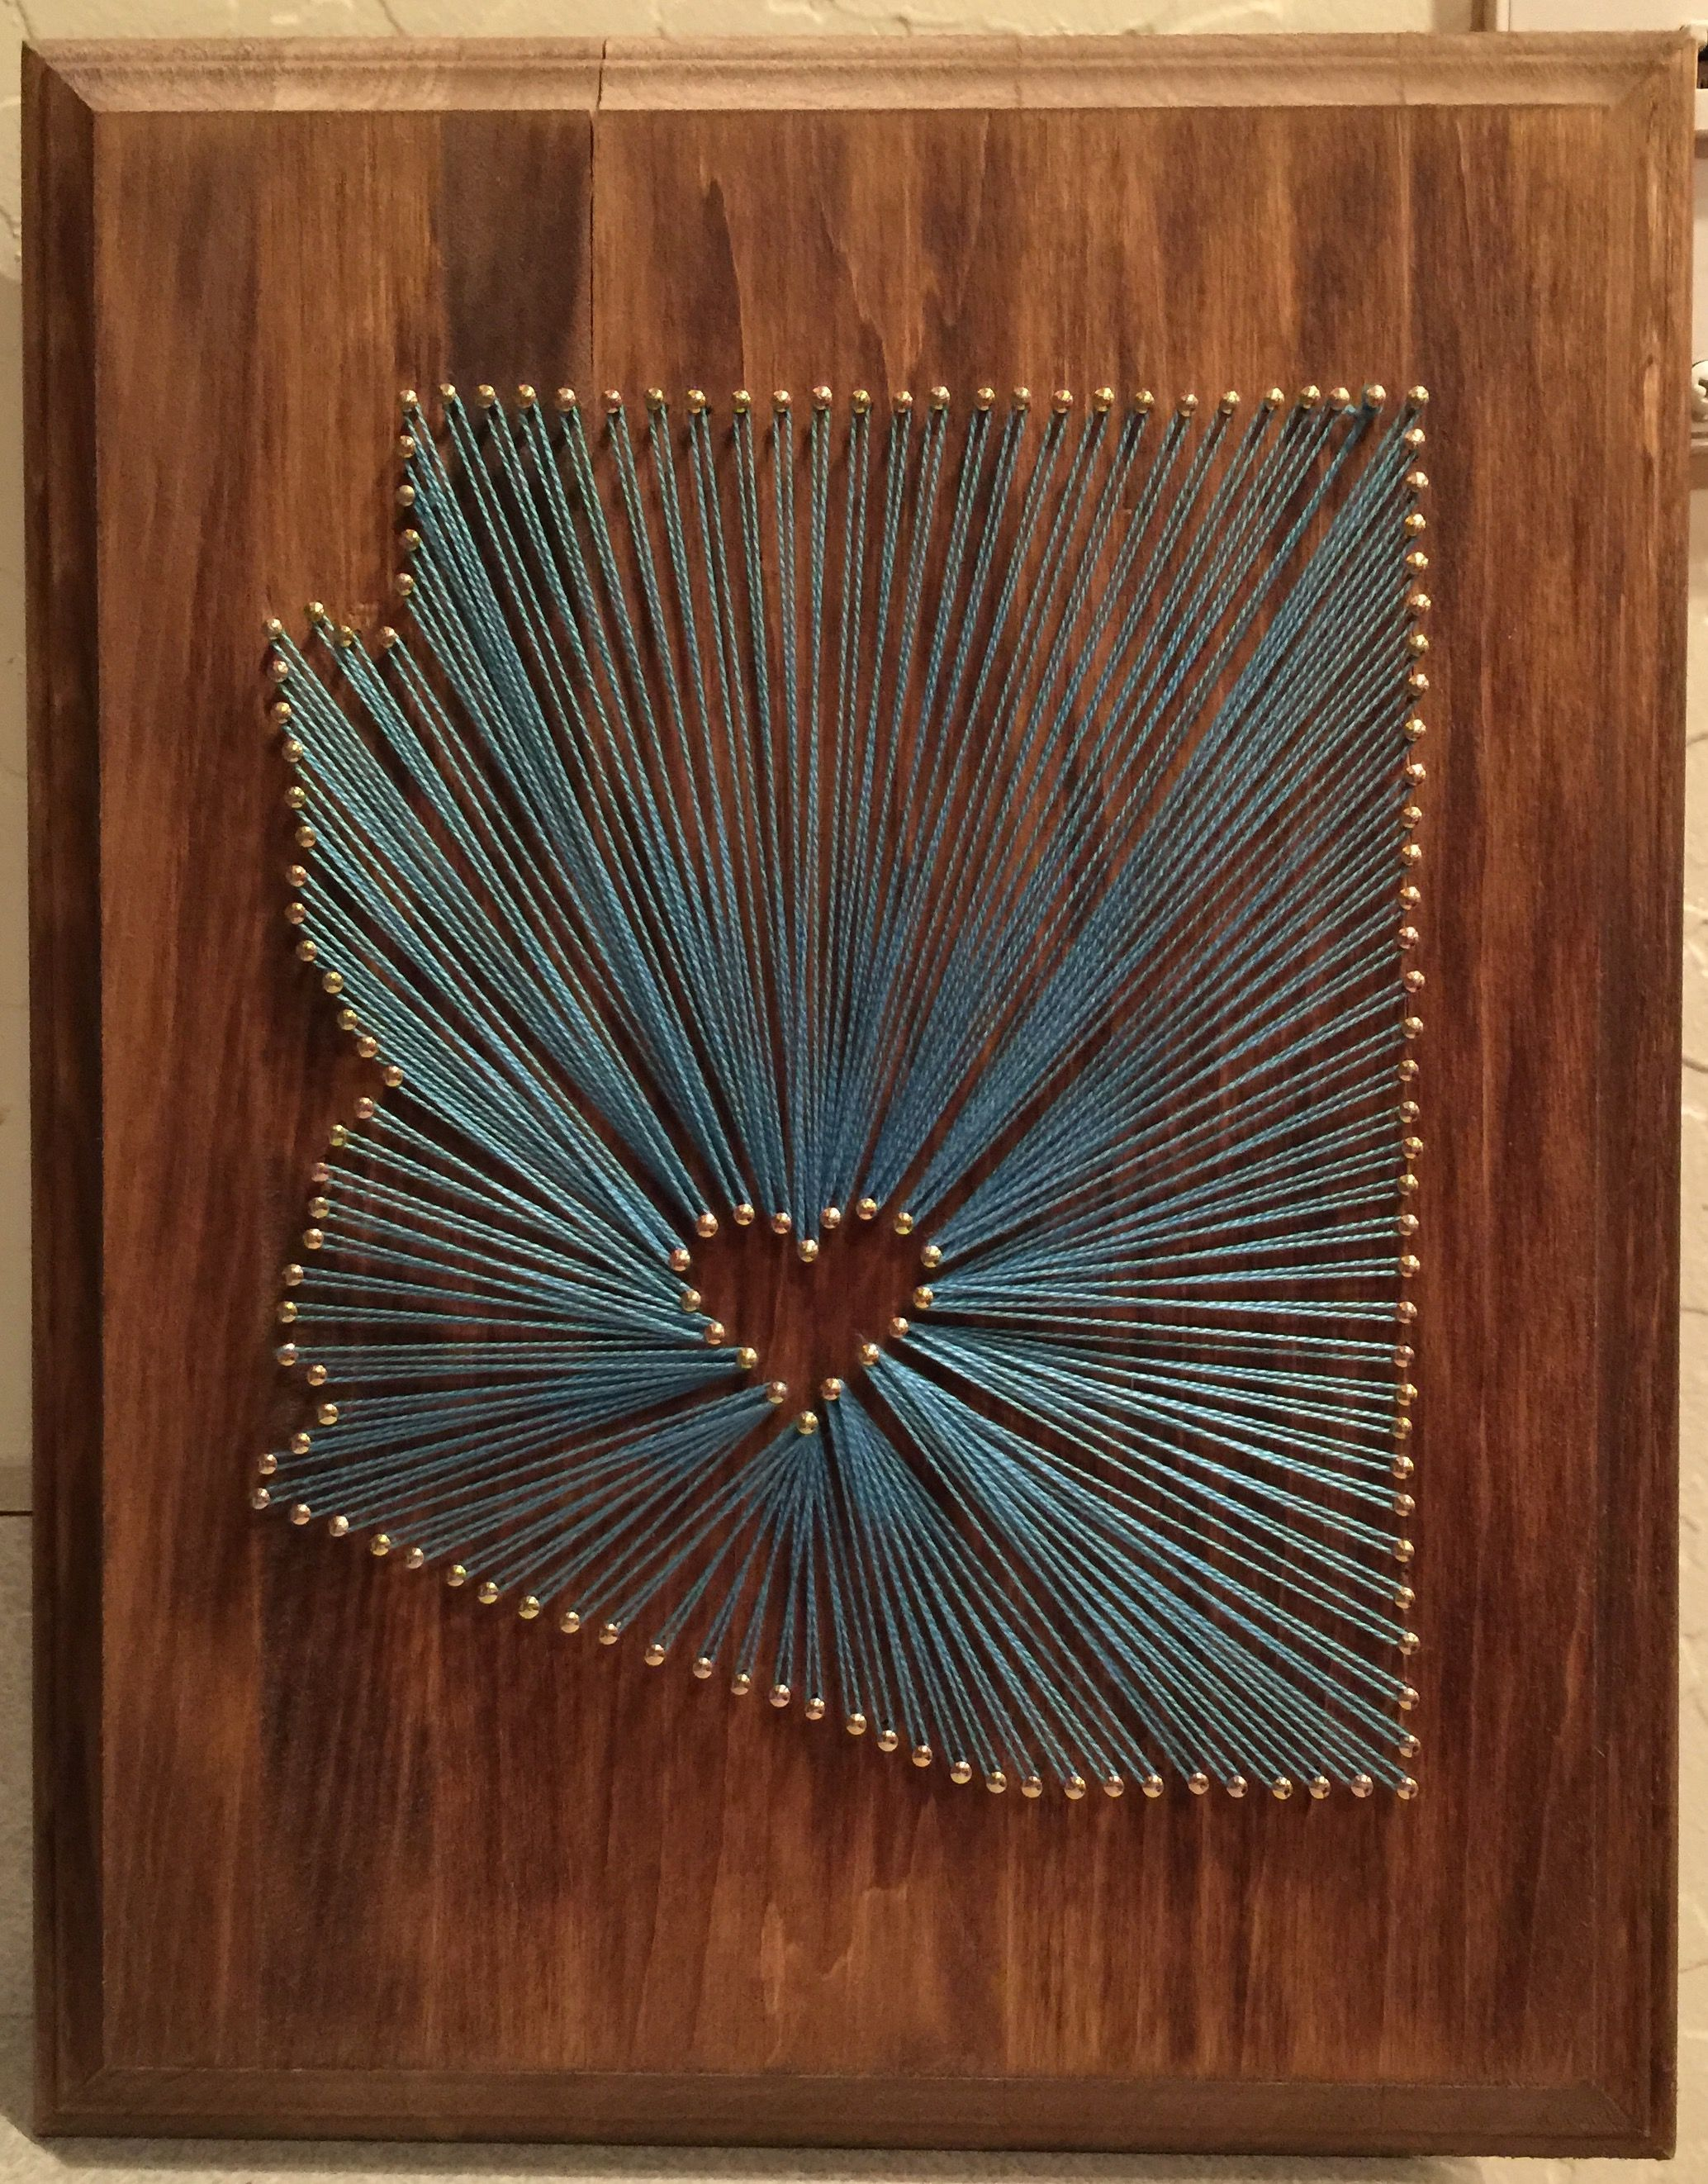 Arizona String Art Made For A Friend Stained Wood Purchased Board